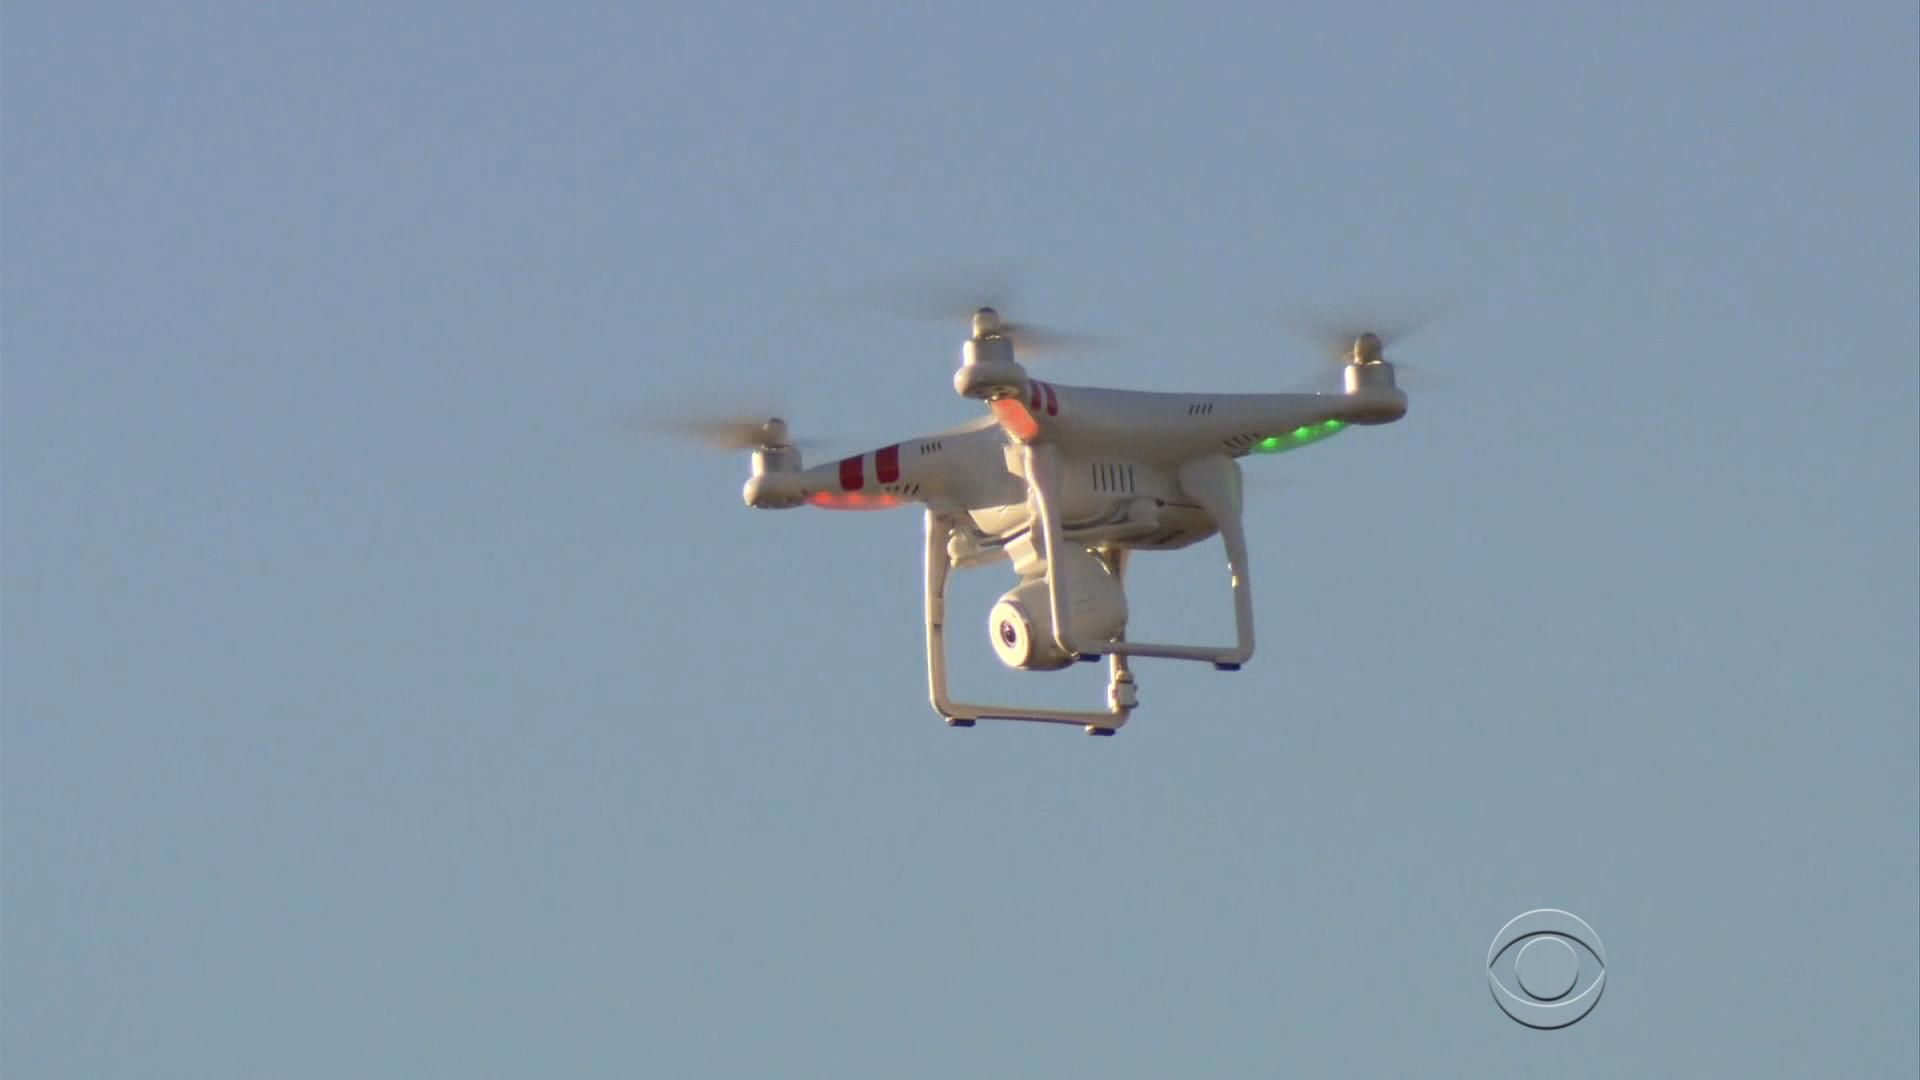 Drone over White House highlights security concerns